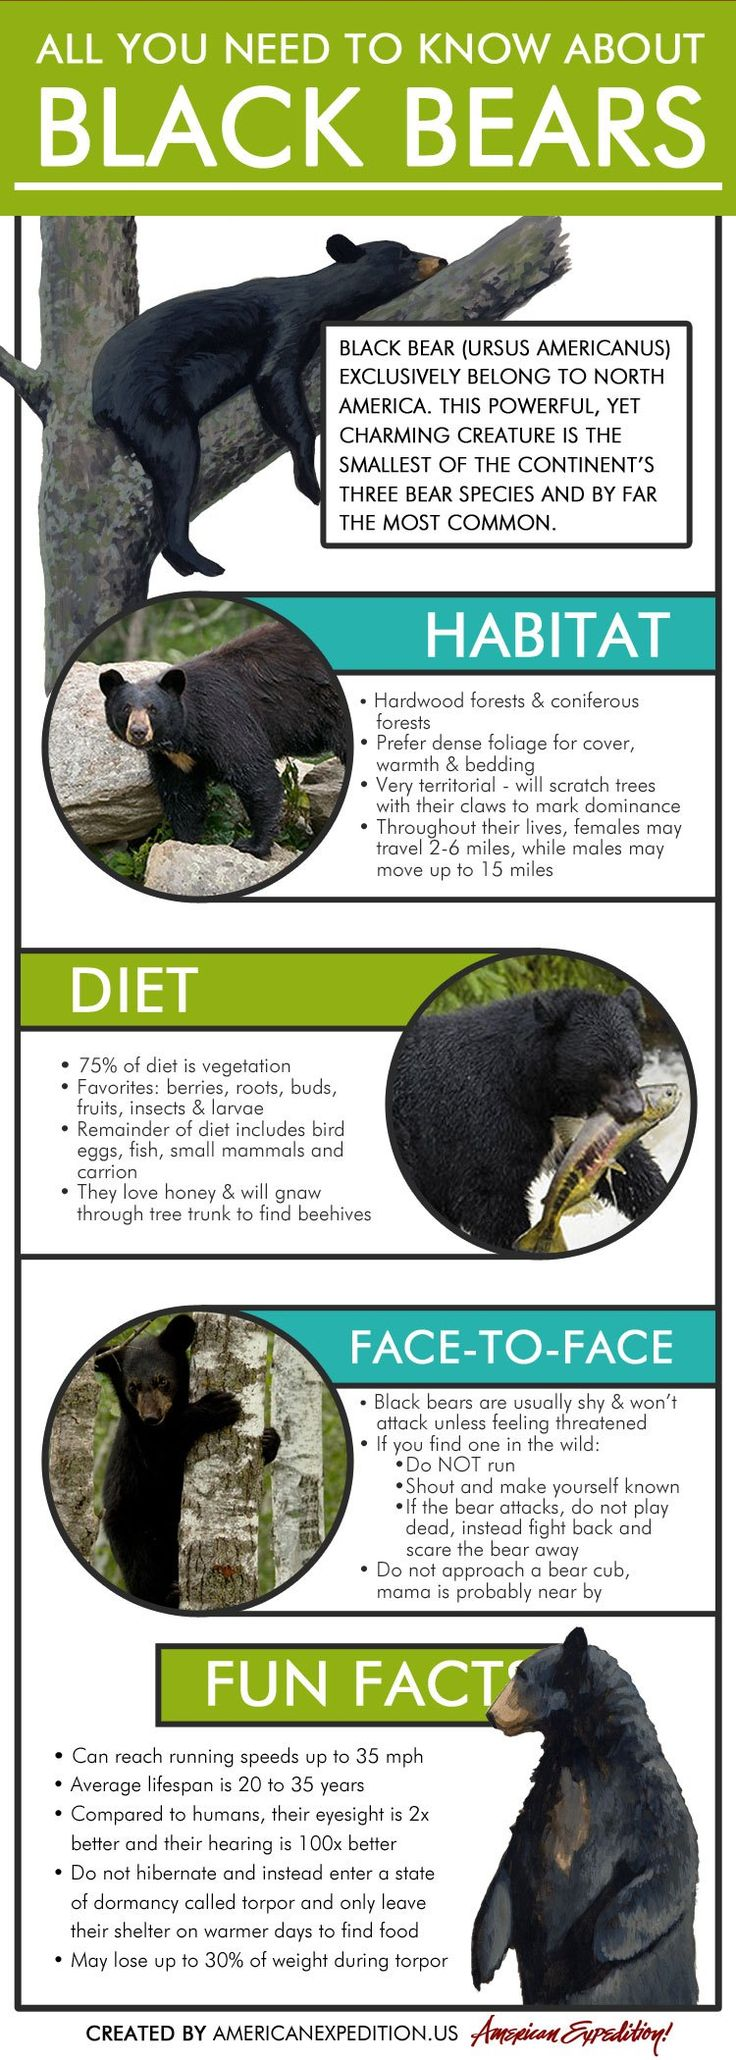 "Black Bear Infographic - ""All You Need to Know About Black Bears"" - Learn about black bear habitats, diets and what to do if you encounter one."